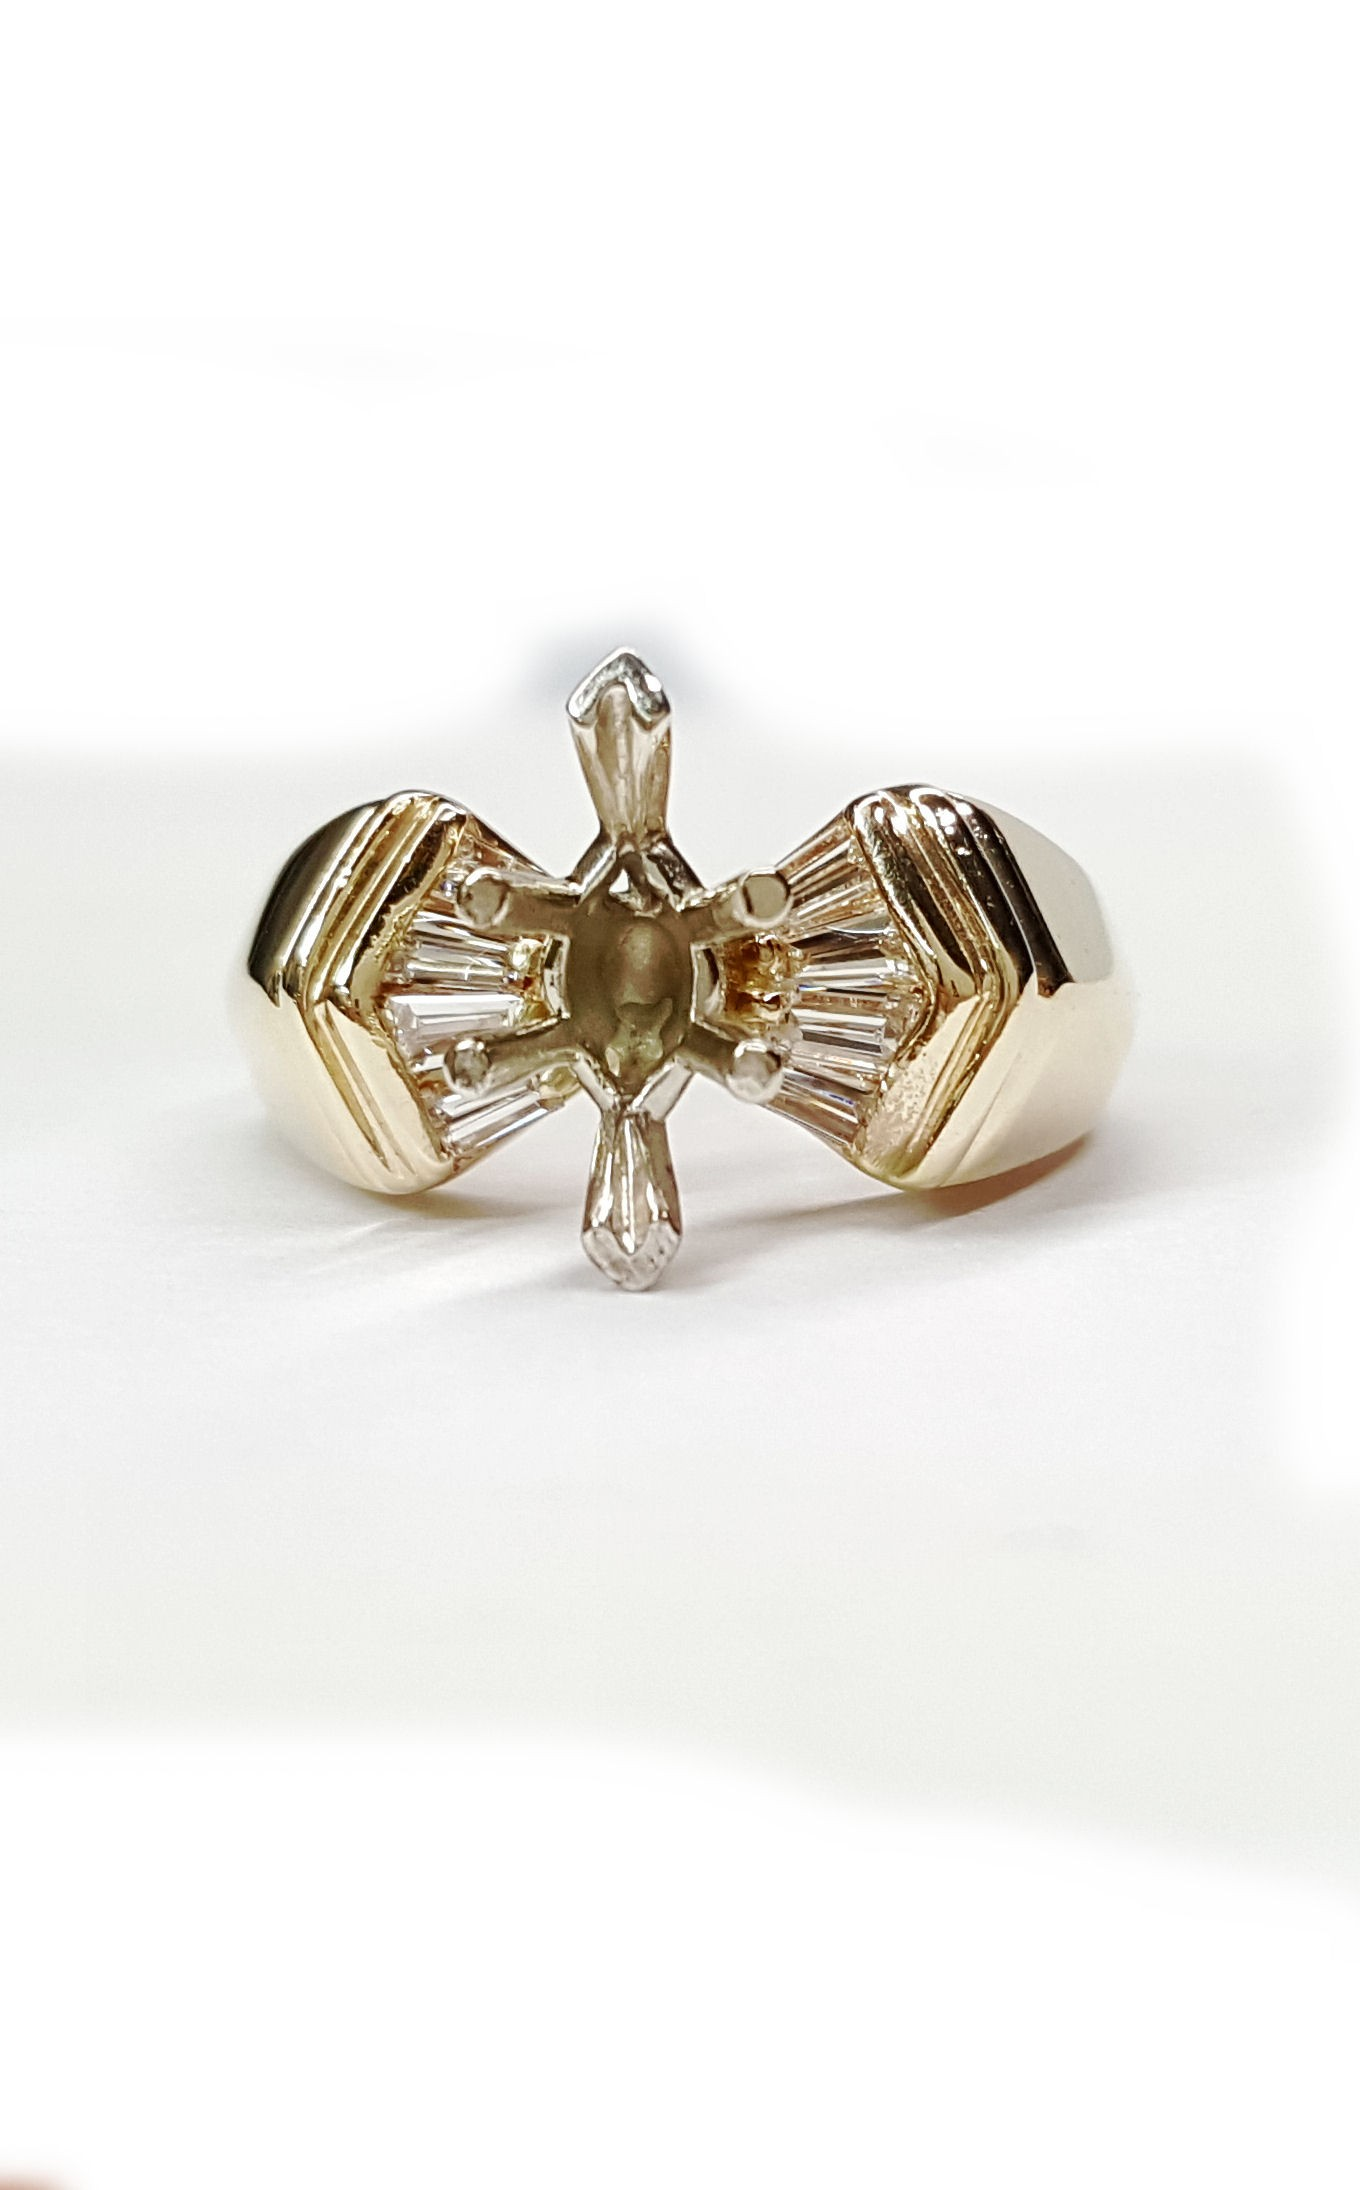 Diamond baguette engagement ring mounting,50pts. t.w.